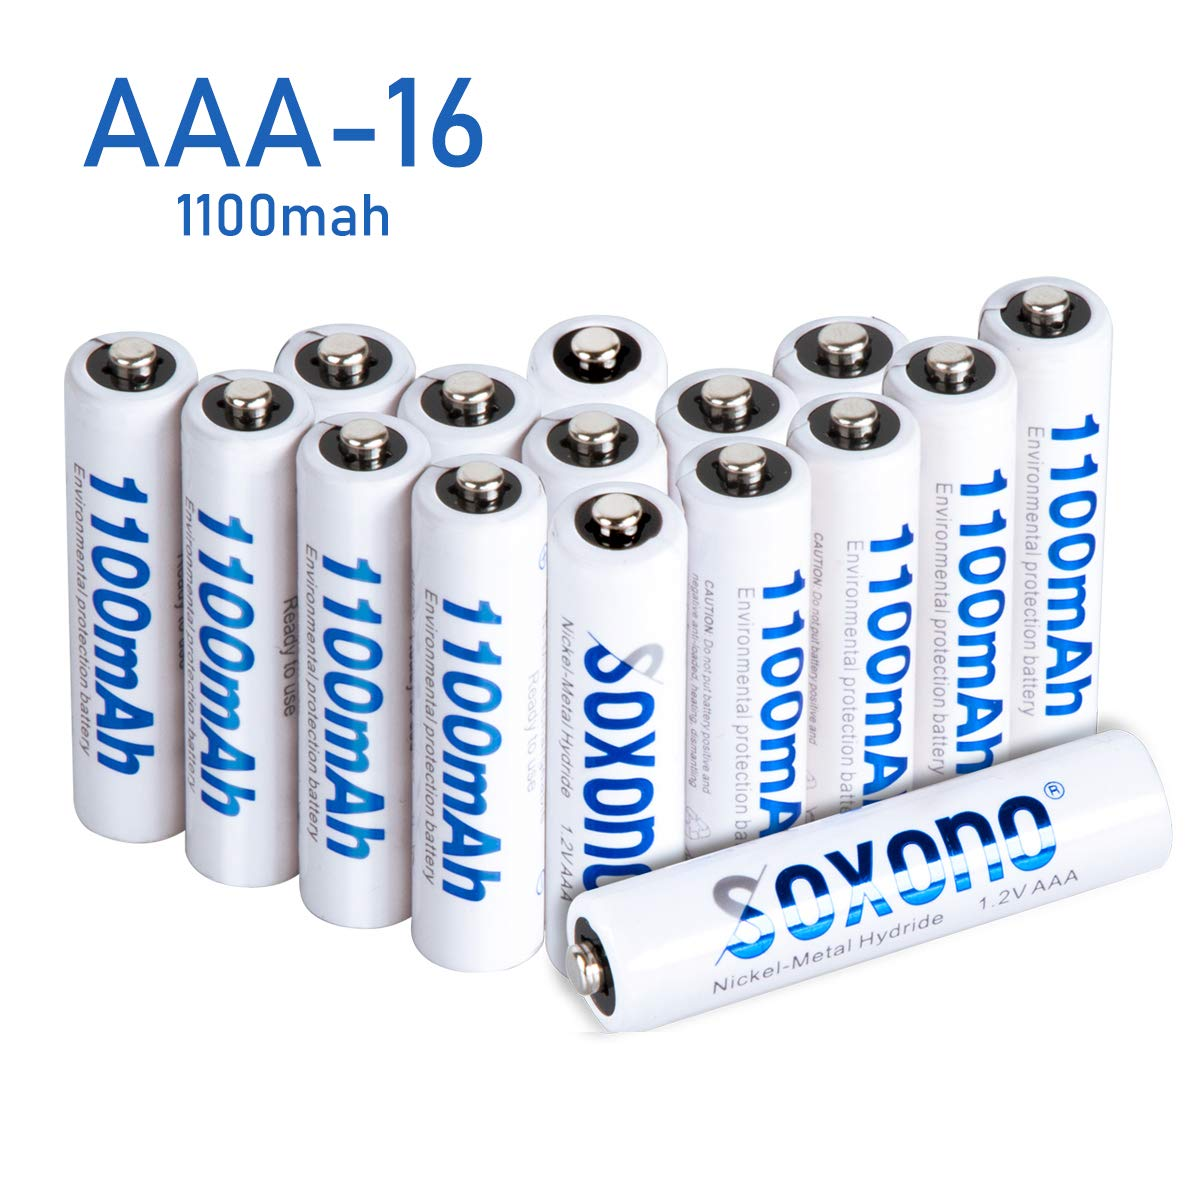 AAA Batteries Rechargeable,Sonoxo AAA Batteries(16 Pack) High Capacity 1100mAh Battery Pack with Low Self Discharge